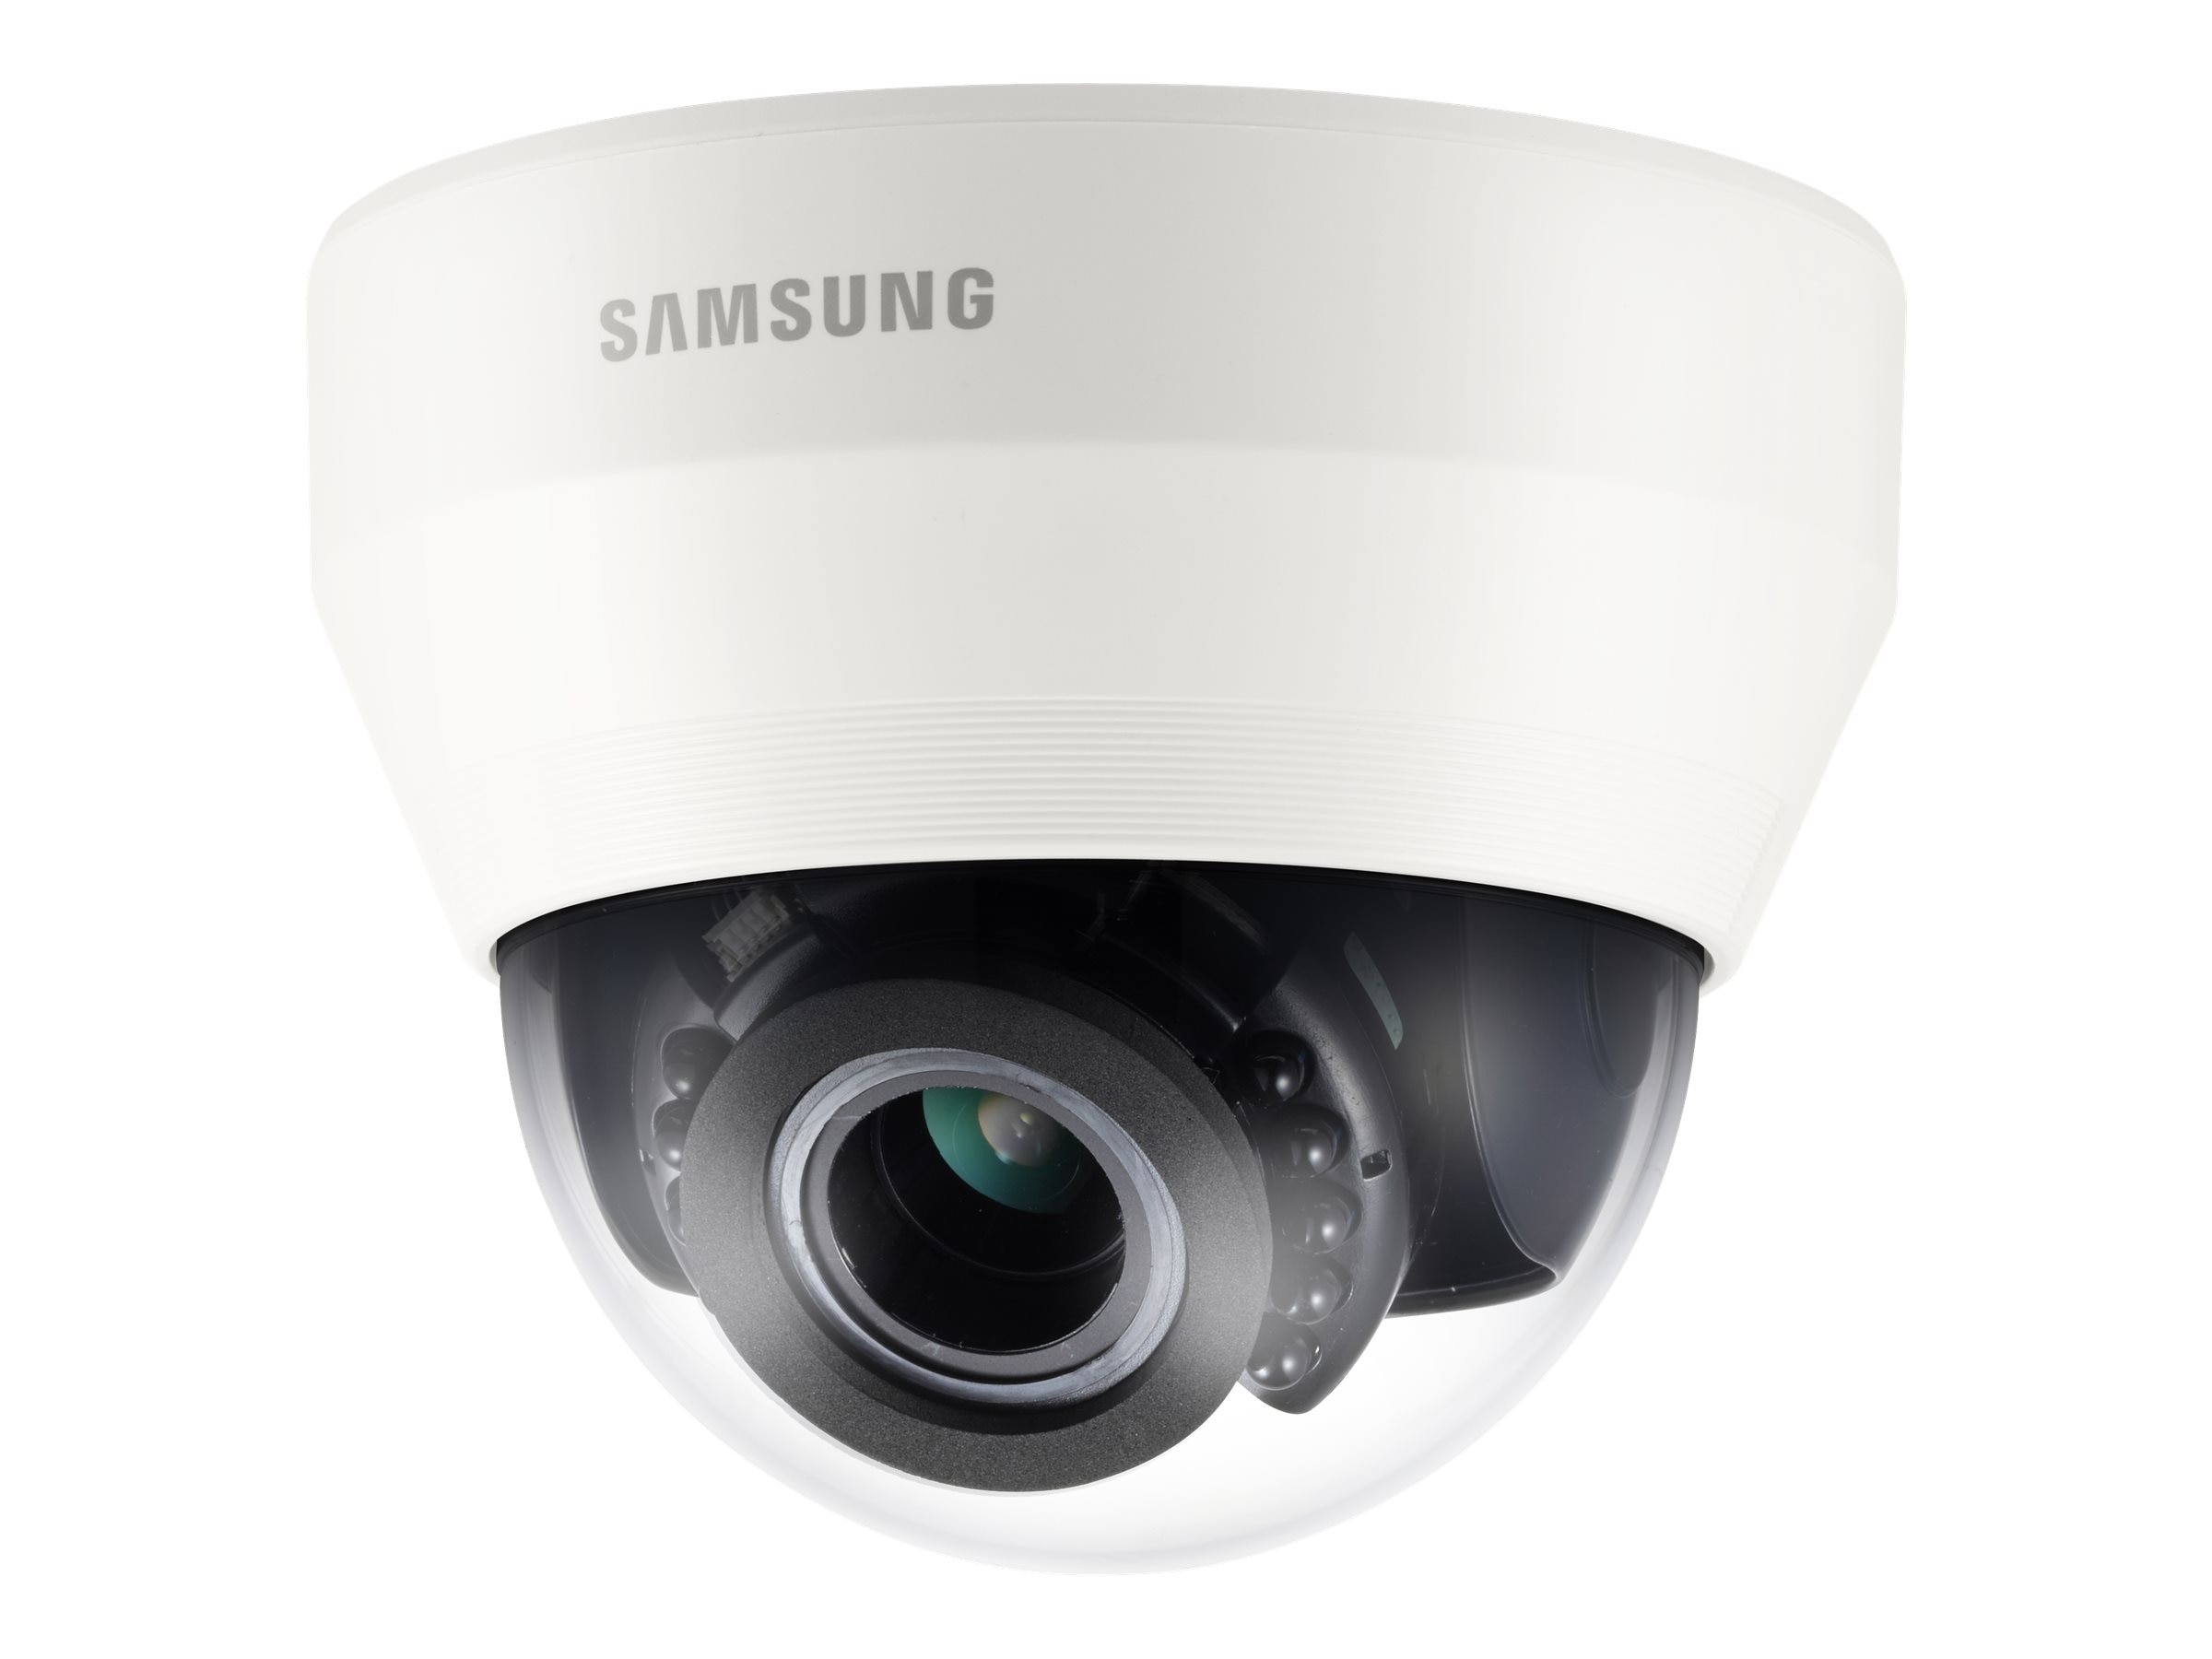 Samsung 1080p Full-HD IR Dome Camera, White, SCD-6083R